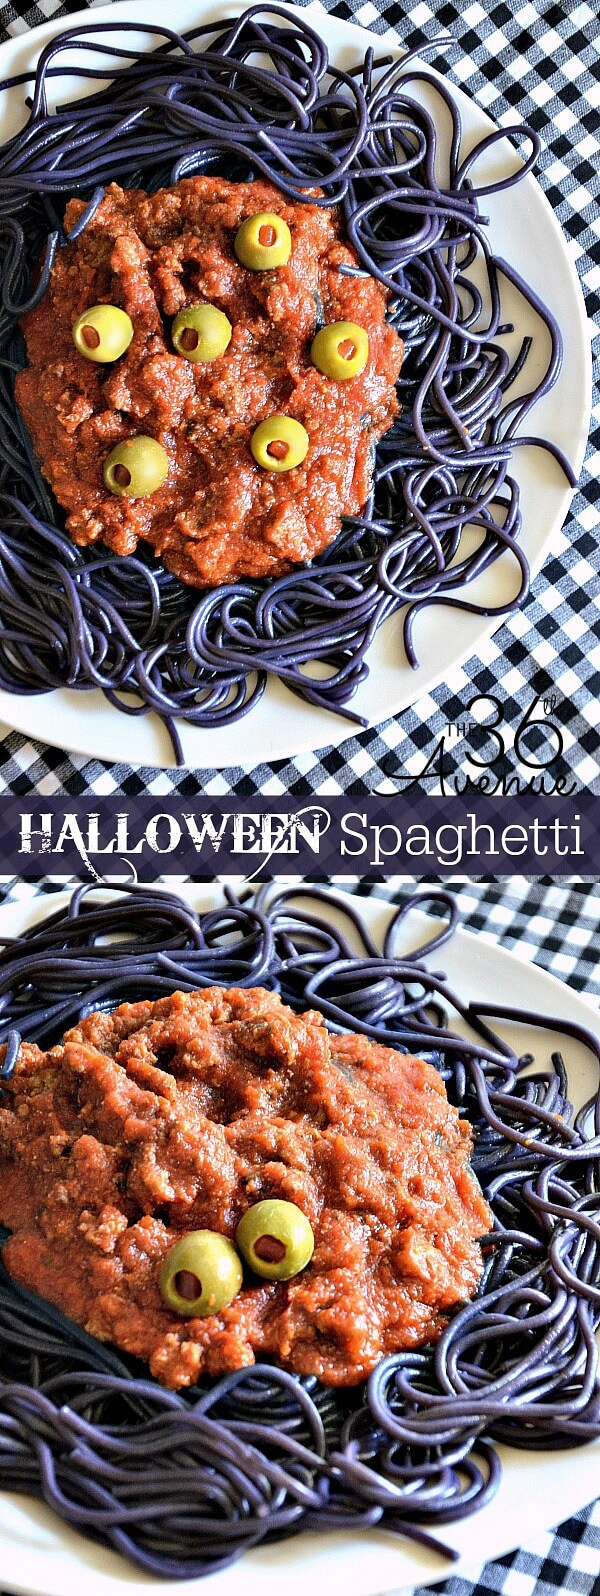 Halloween Spaghetti | Halloween Party Food Ideas | Halloween Party Themes For Adults